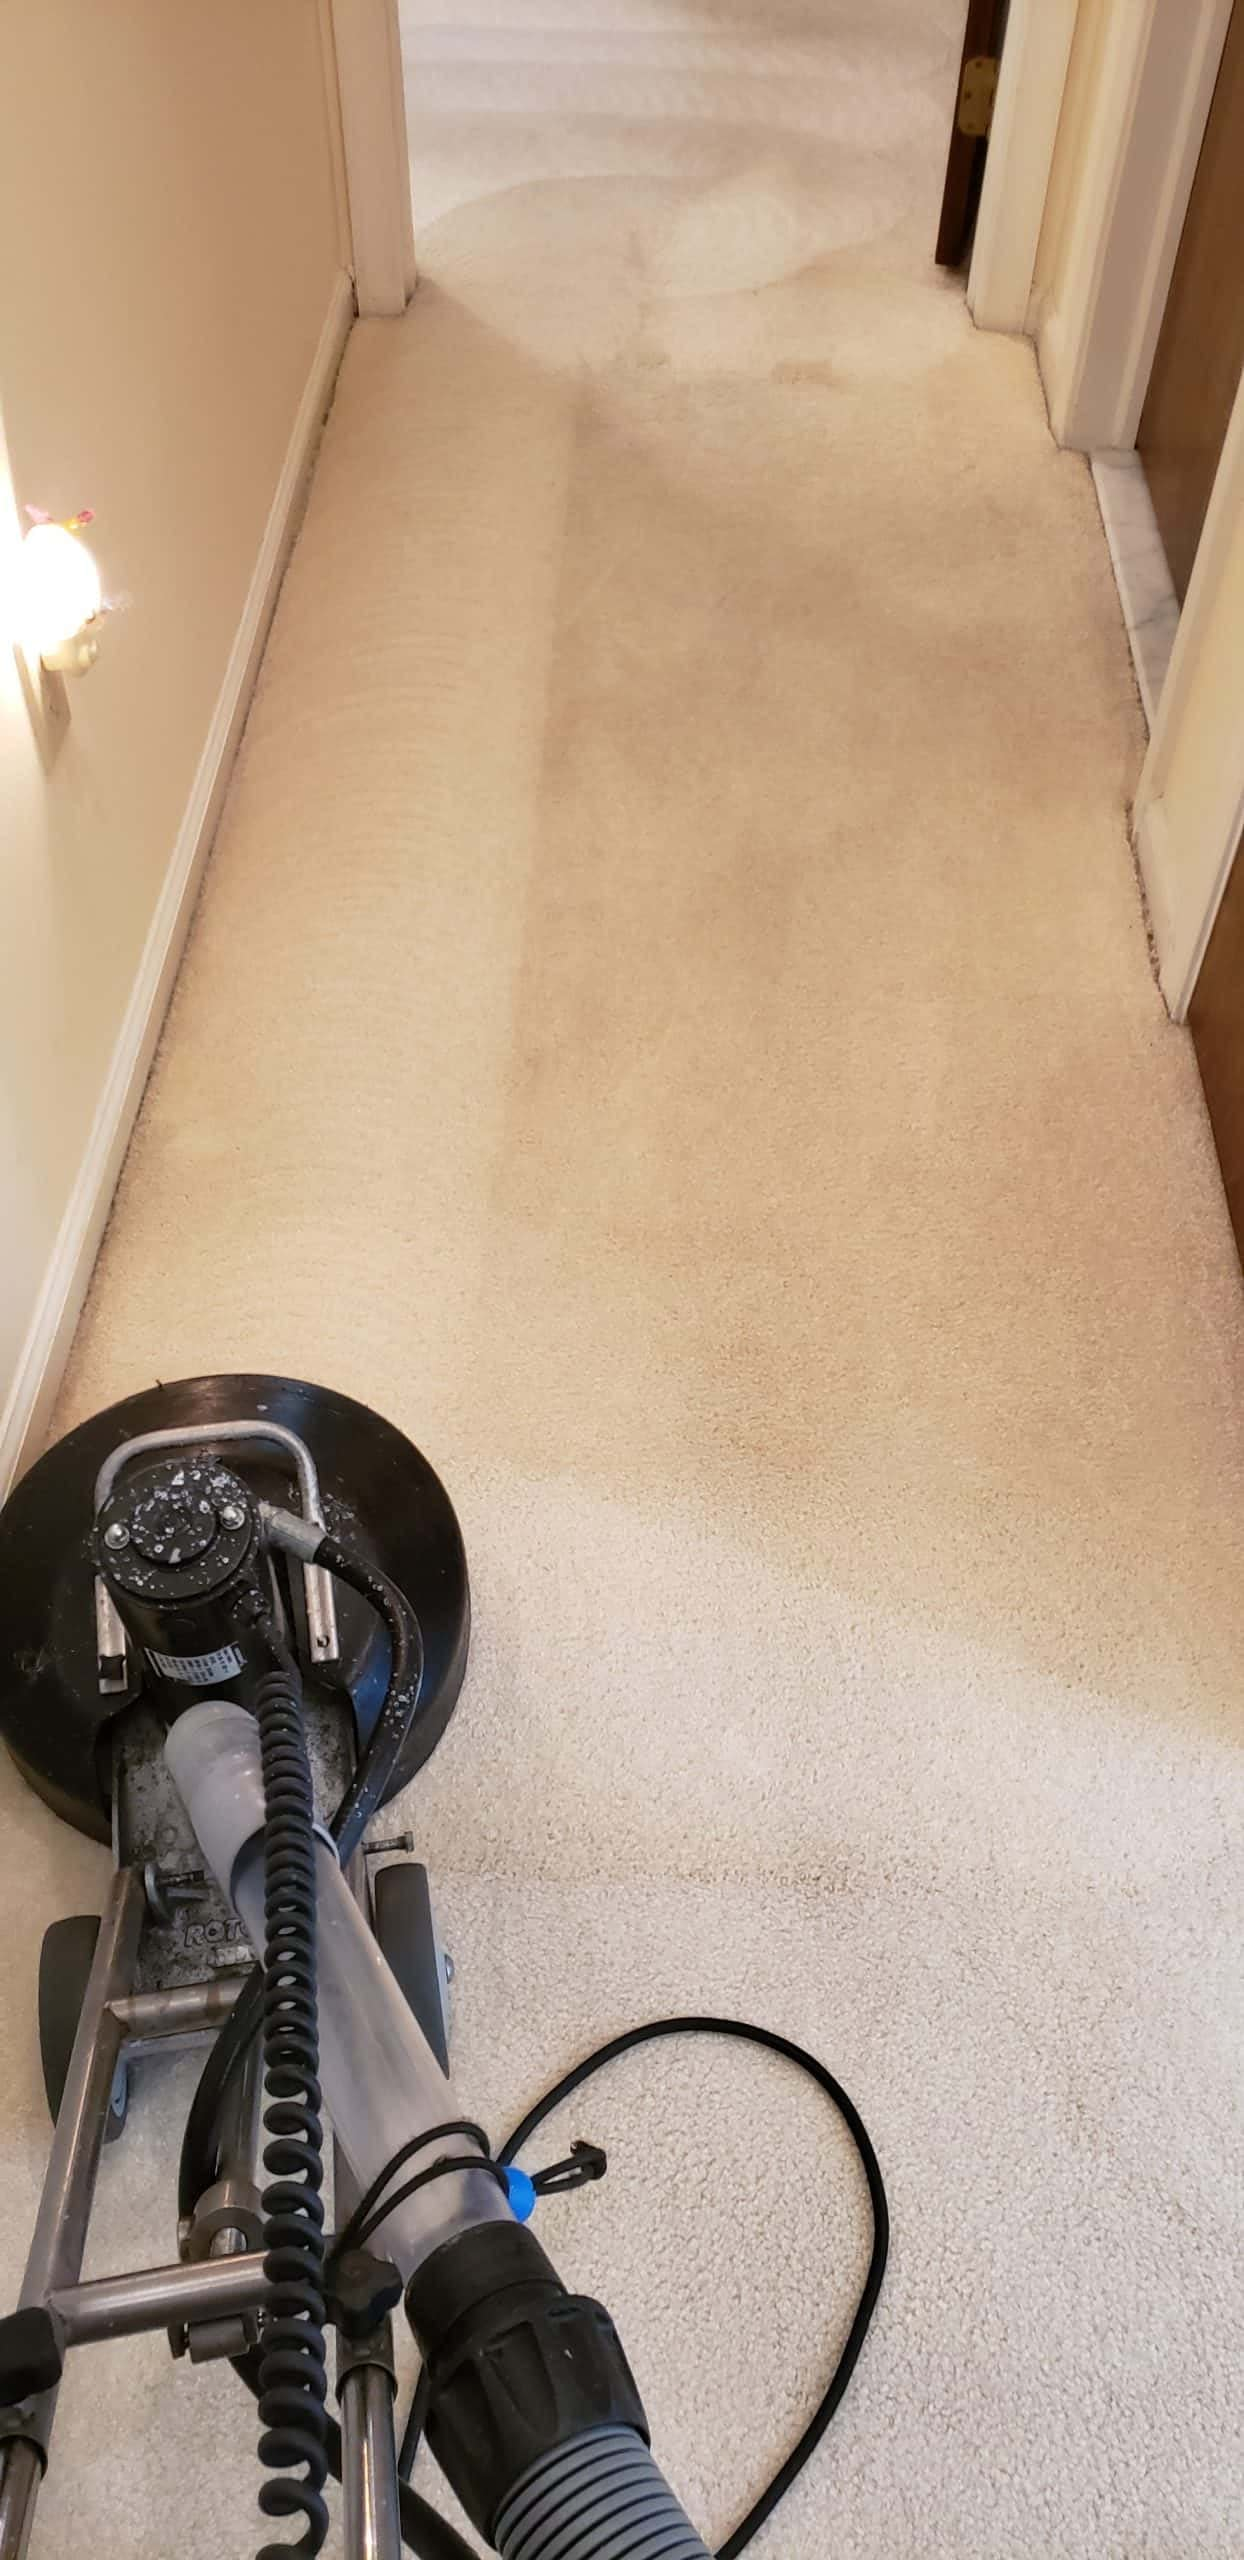 Hallway Carpet Cleaning in Center Valley, PA